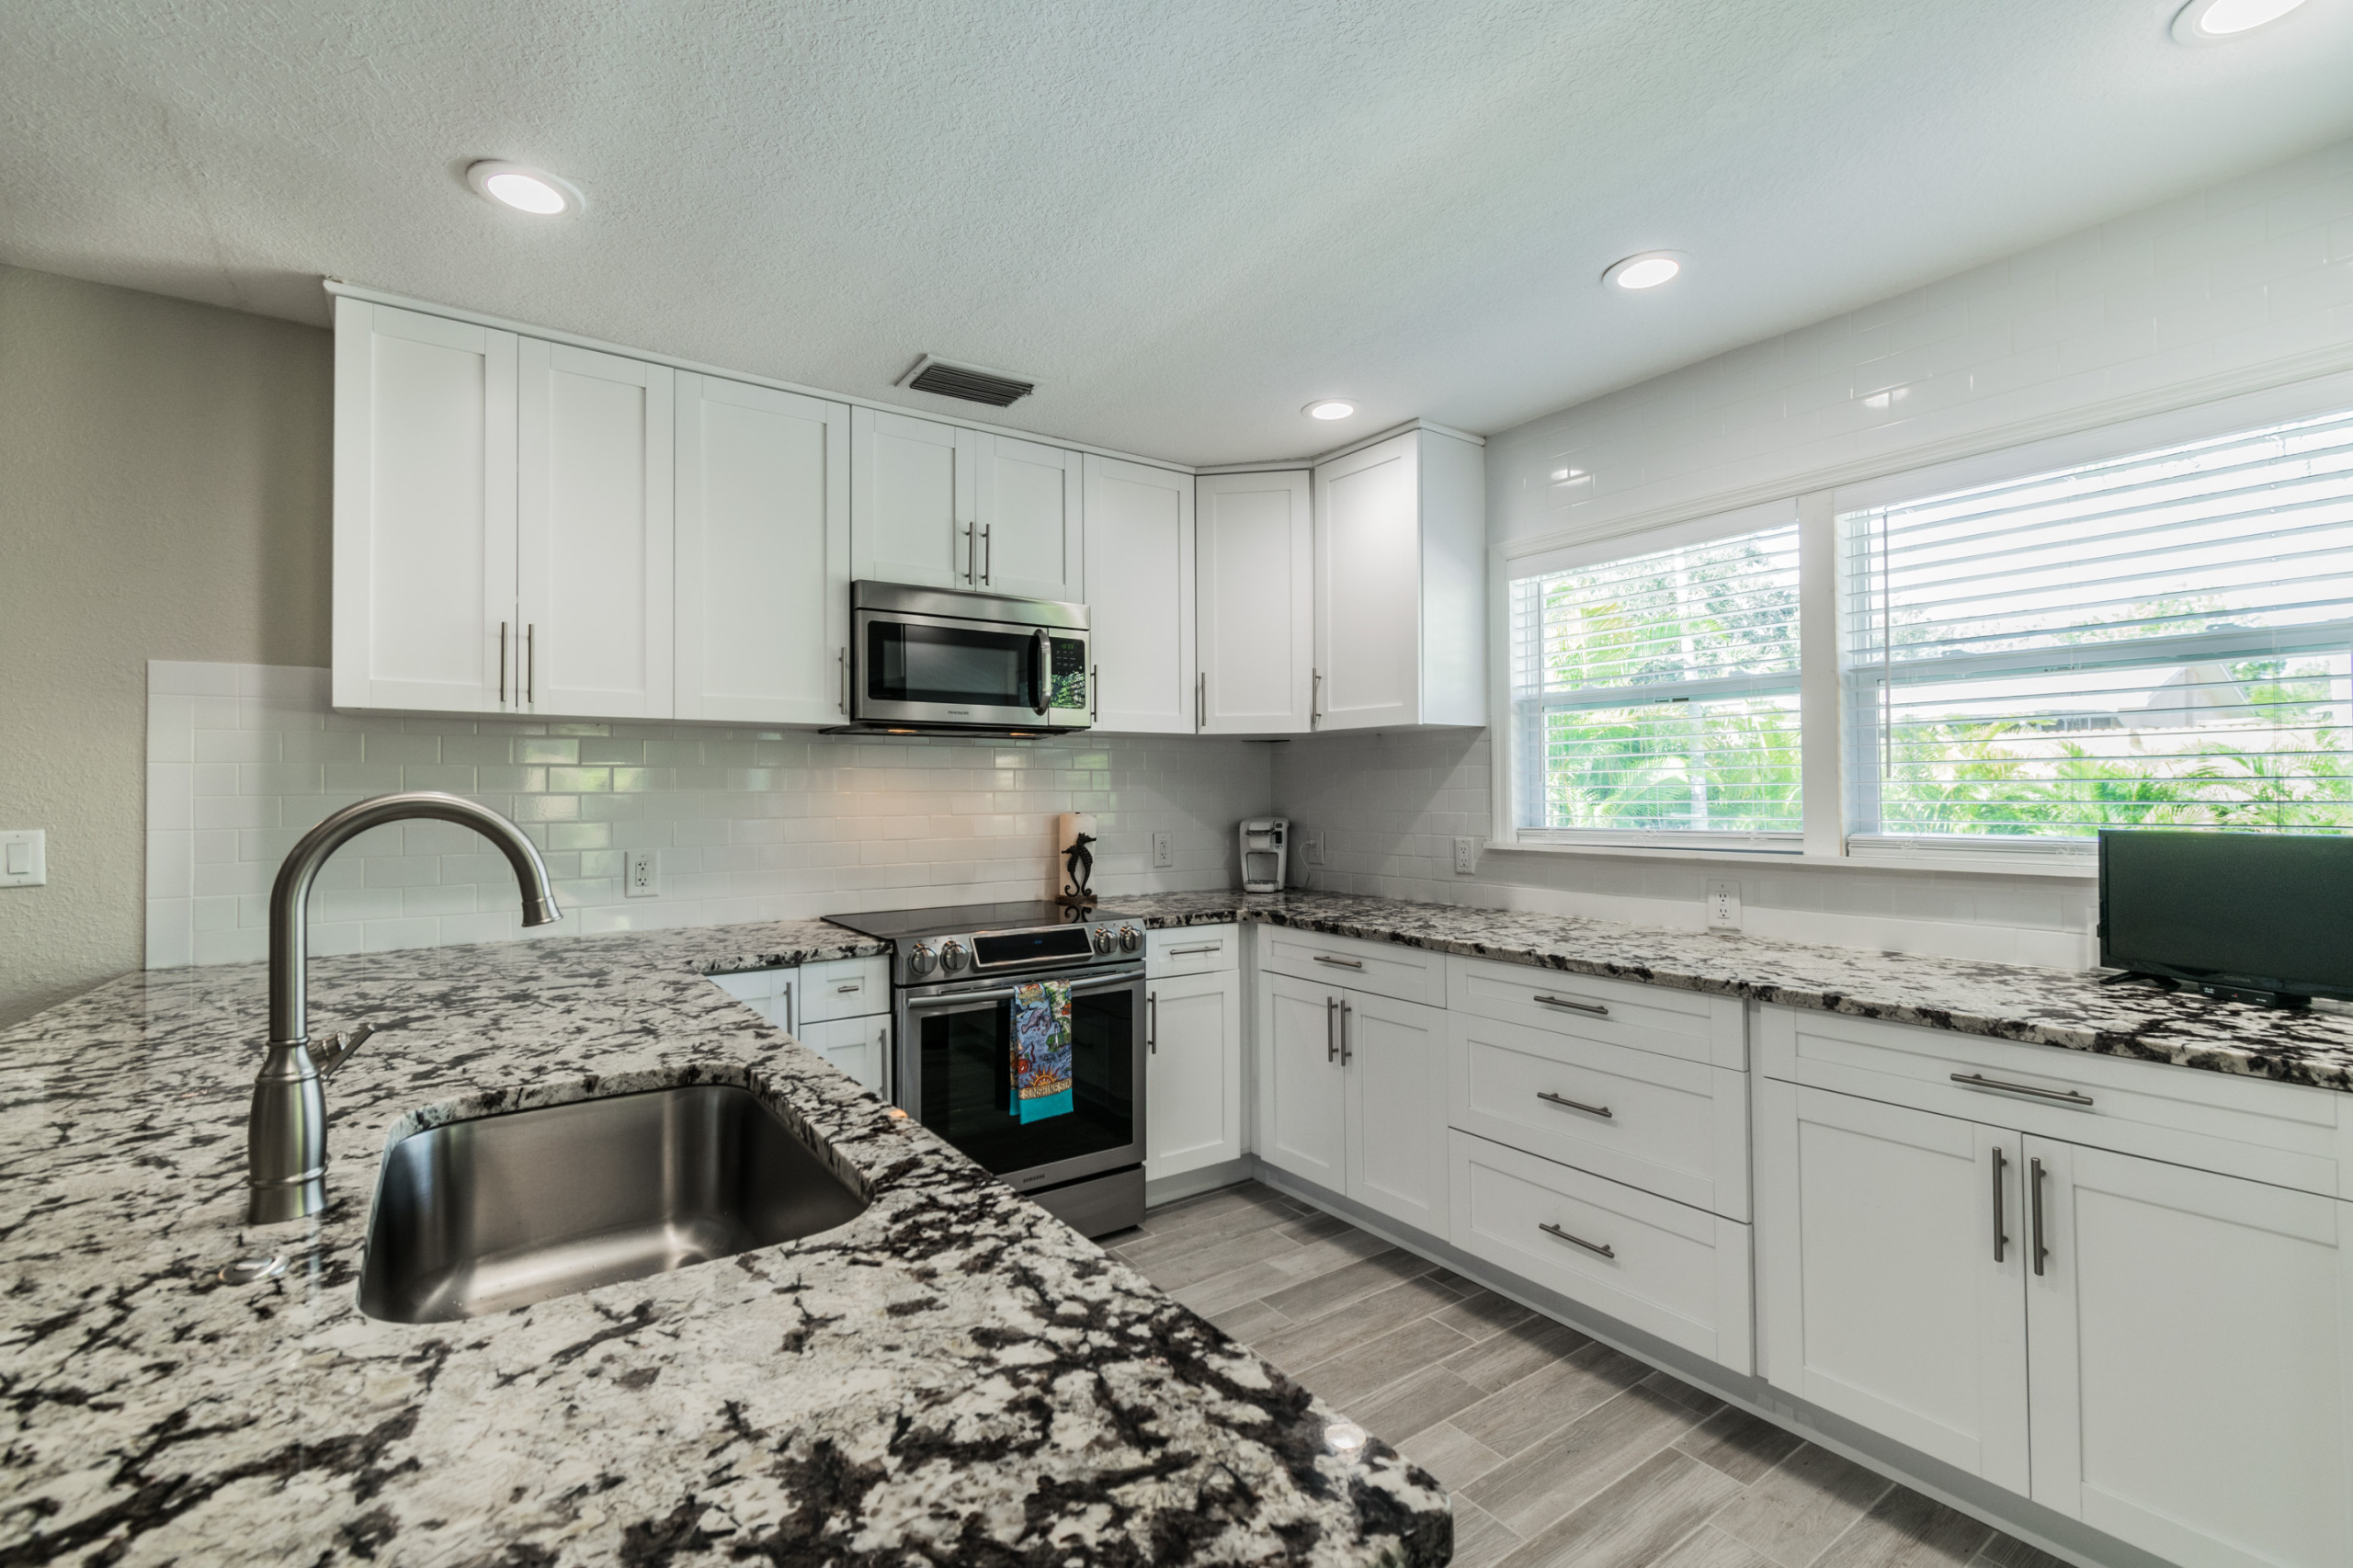 Kitchen remodel with shaker cabinets and granite counters